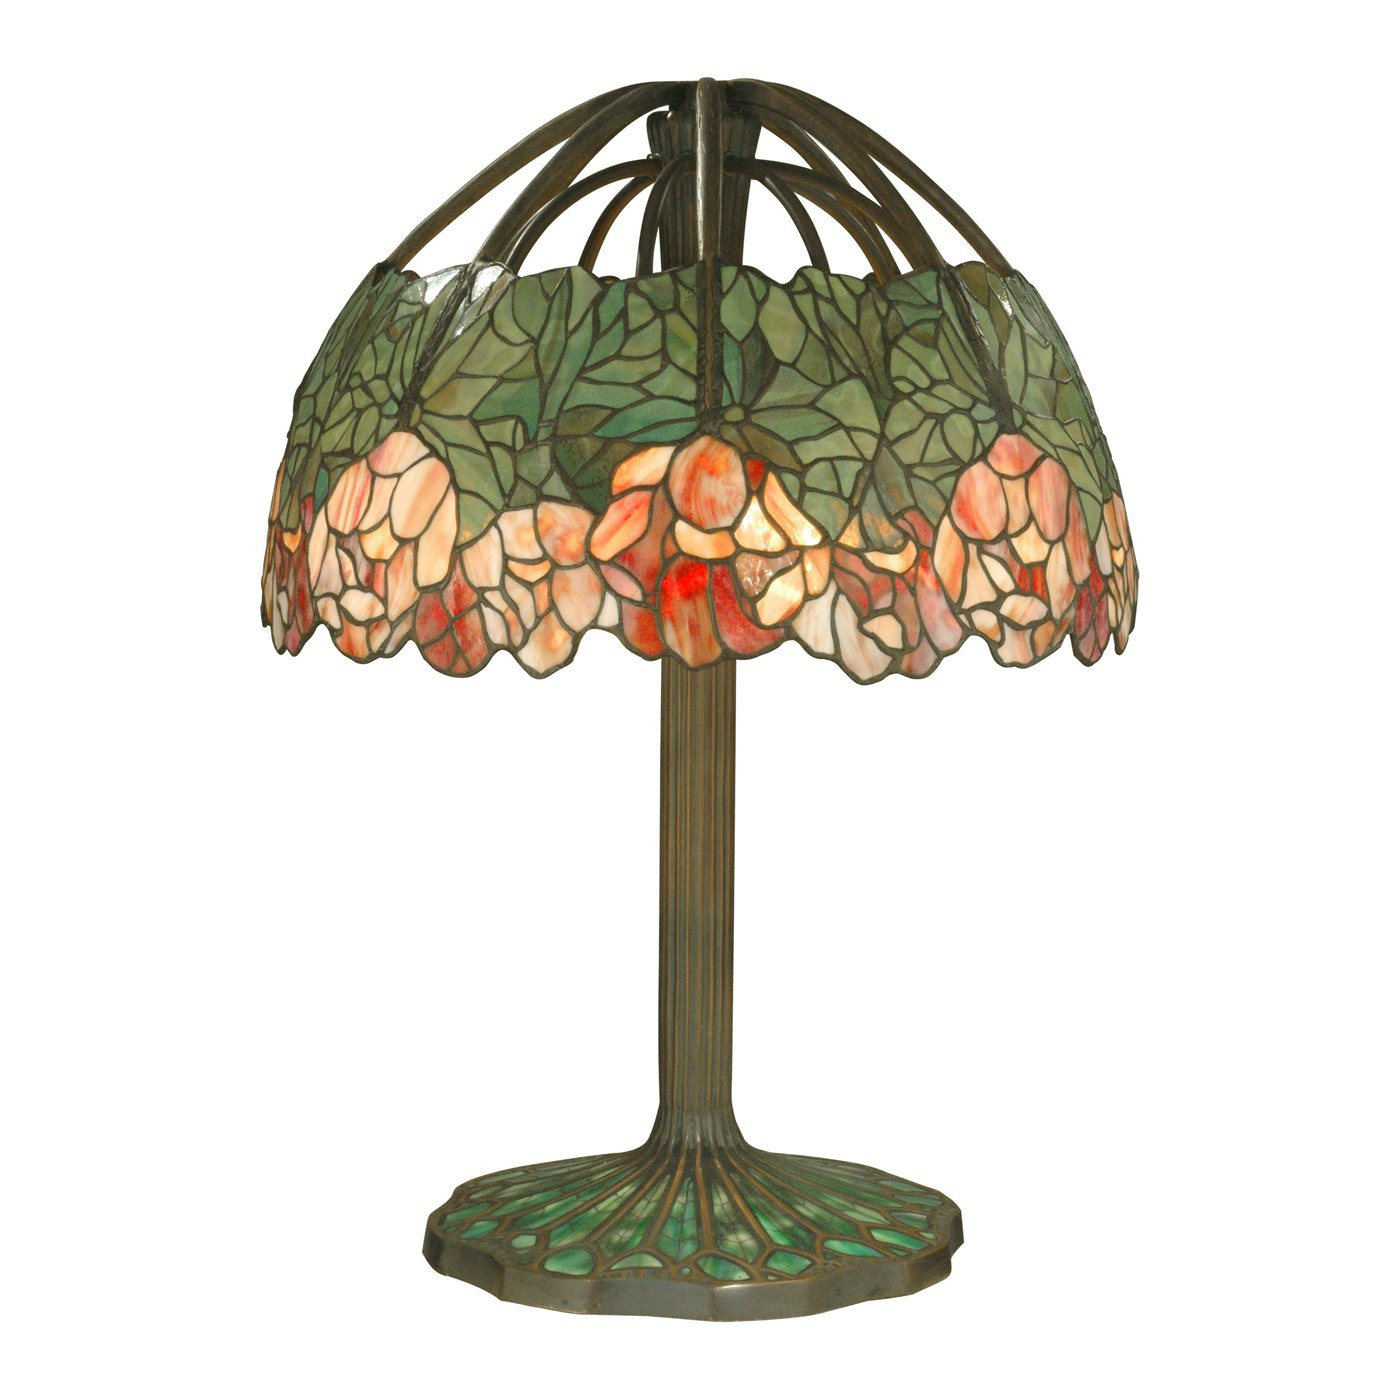 Antique Tiffany Lamps Fresh Dale Tiffany Tt 6 Light Table Lamp Dark Antique Of Amazing 47 Photos Antique Tiffany Lamps